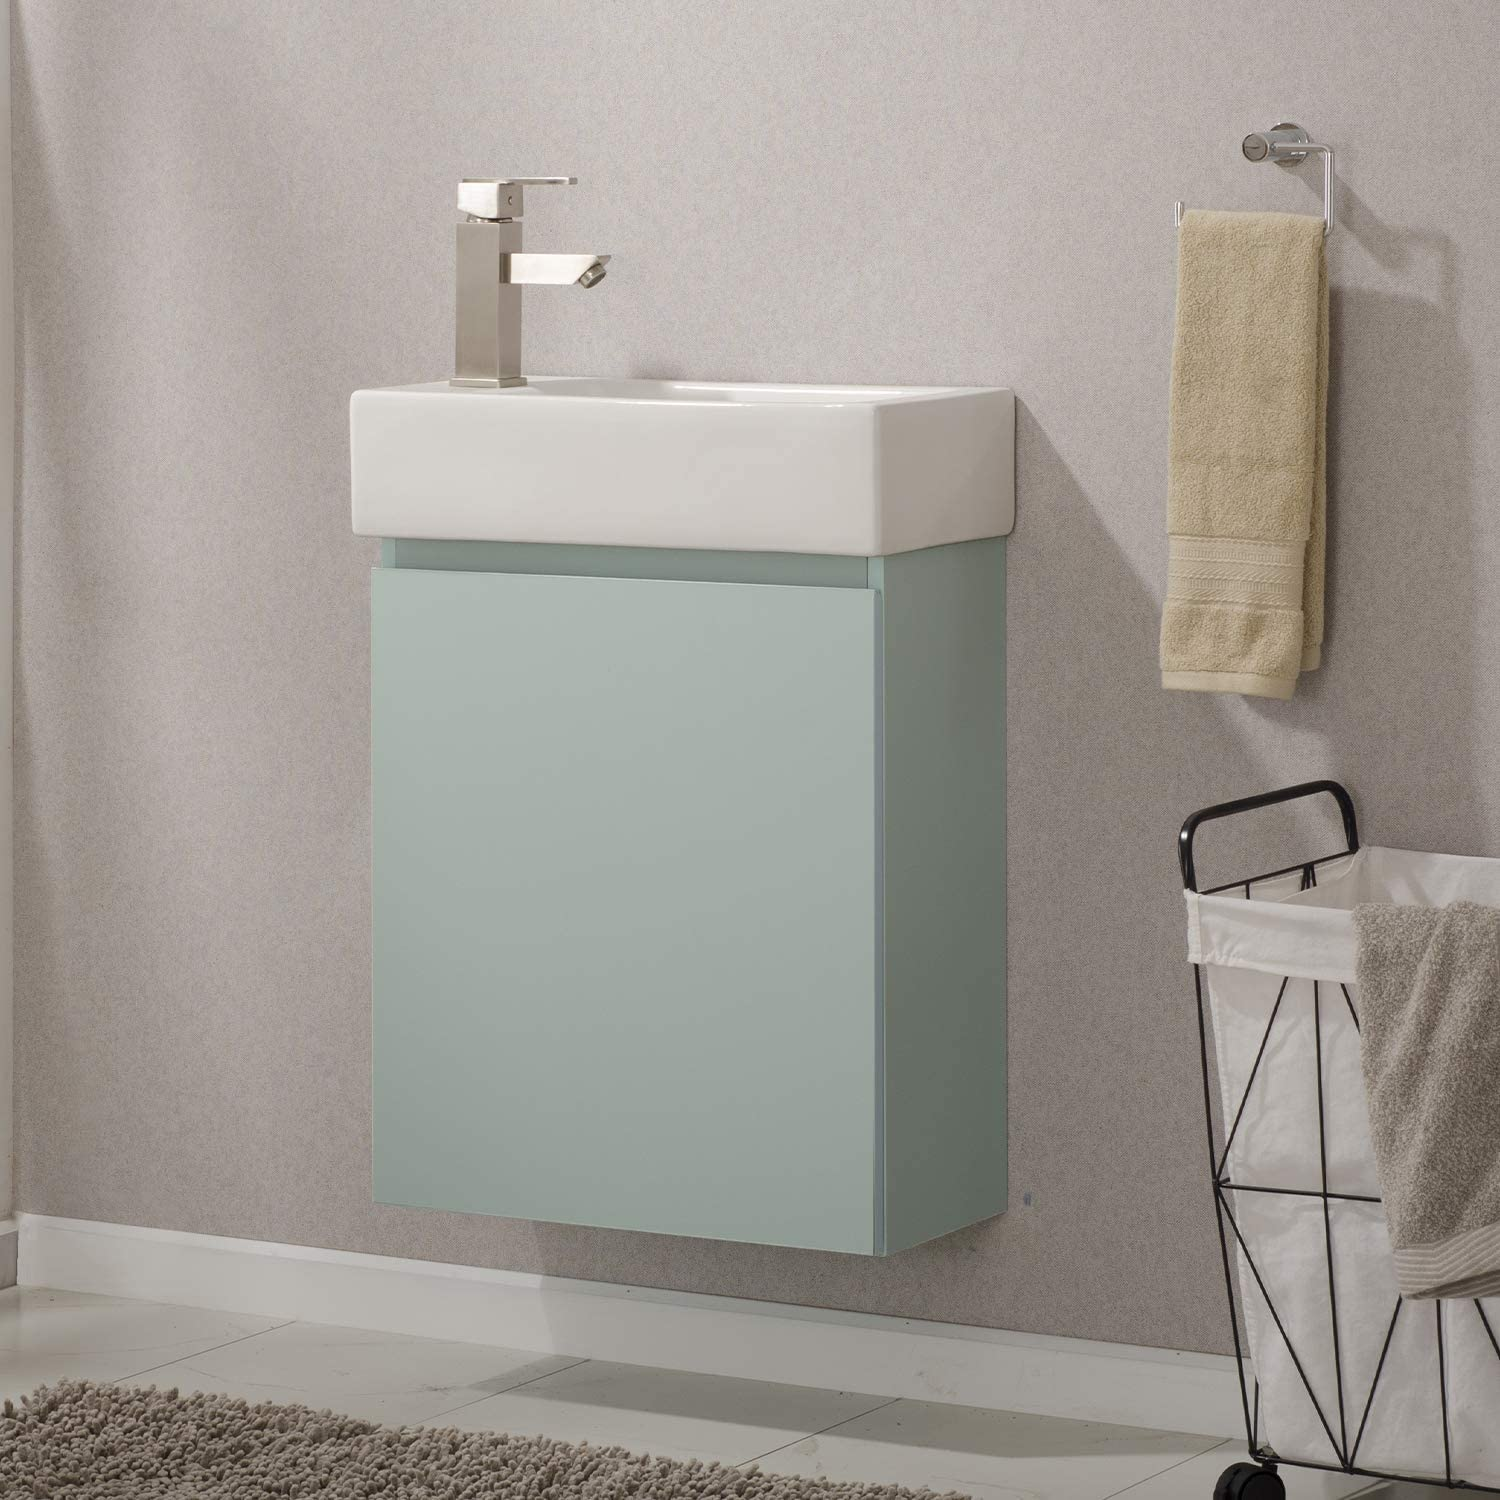 Made with Hardwood and Integrated Porcelain Top, Wall Hung Style Luca Kitchen /& Bath LC20KRP Nova 20 Bathroom Vanity with Sink in Blue Mint